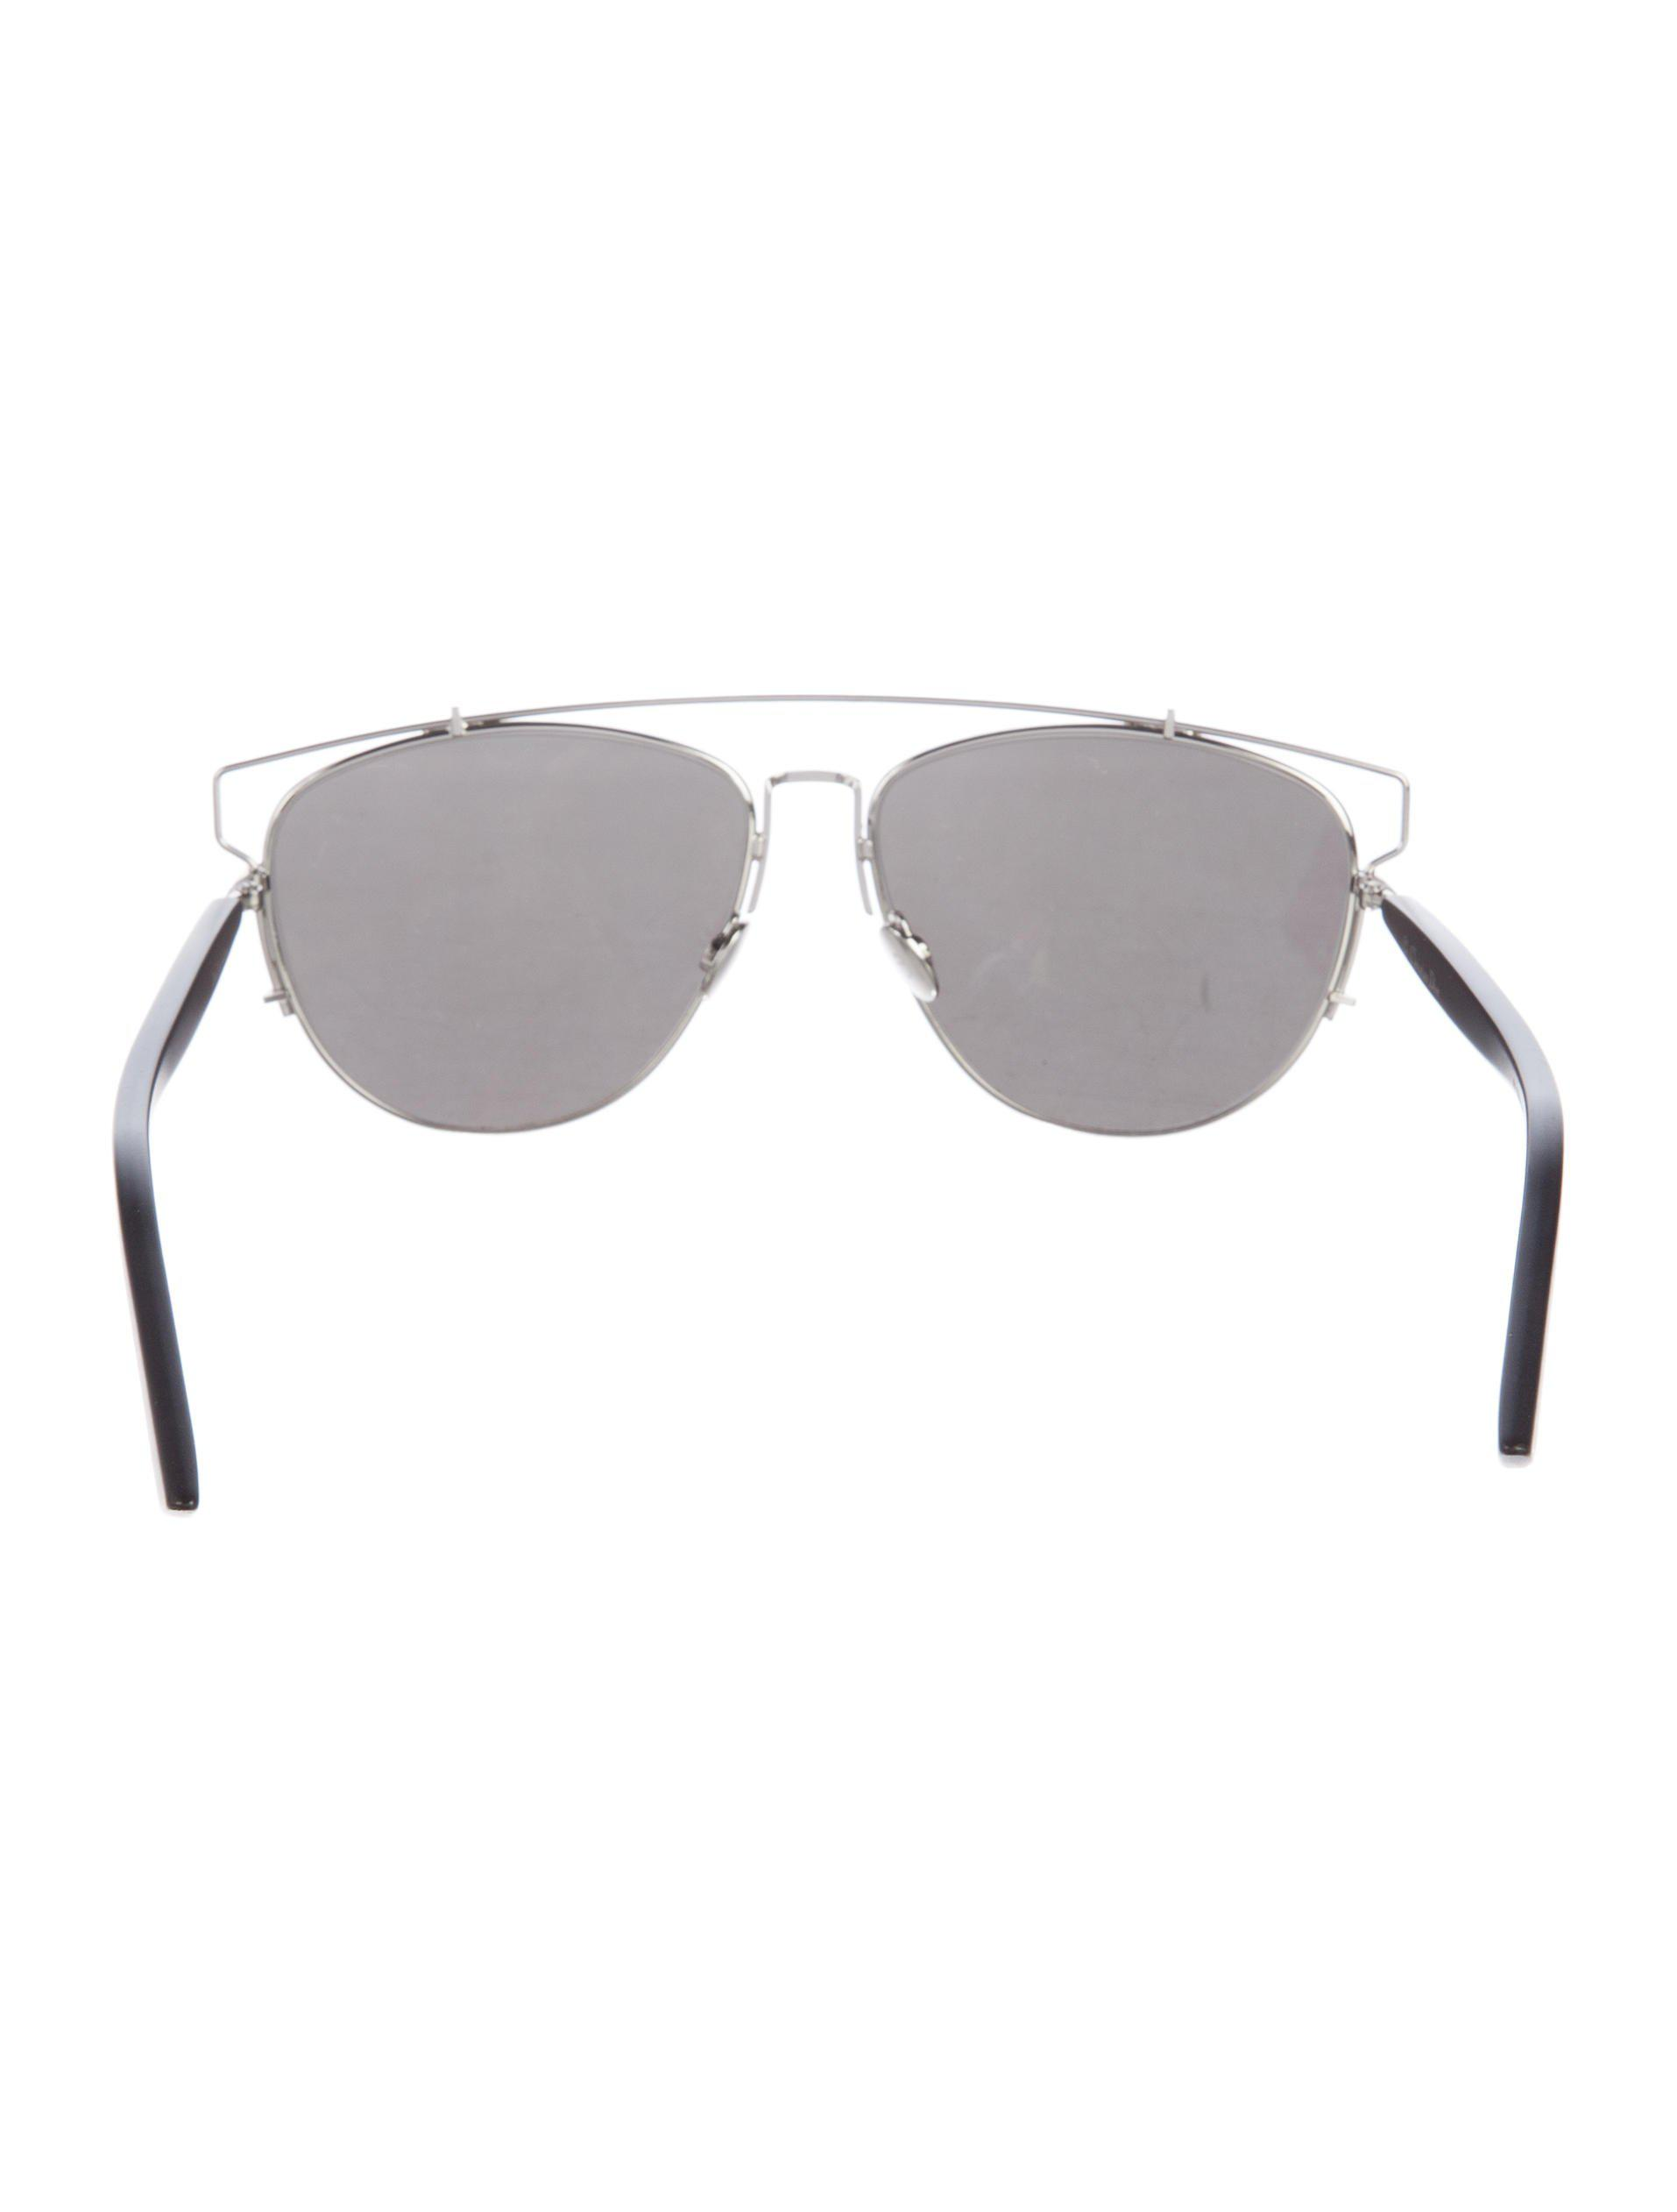 7a41d0e87bee Gallery. Previously sold at  The RealReal · Women s Mirrored Sunglasses